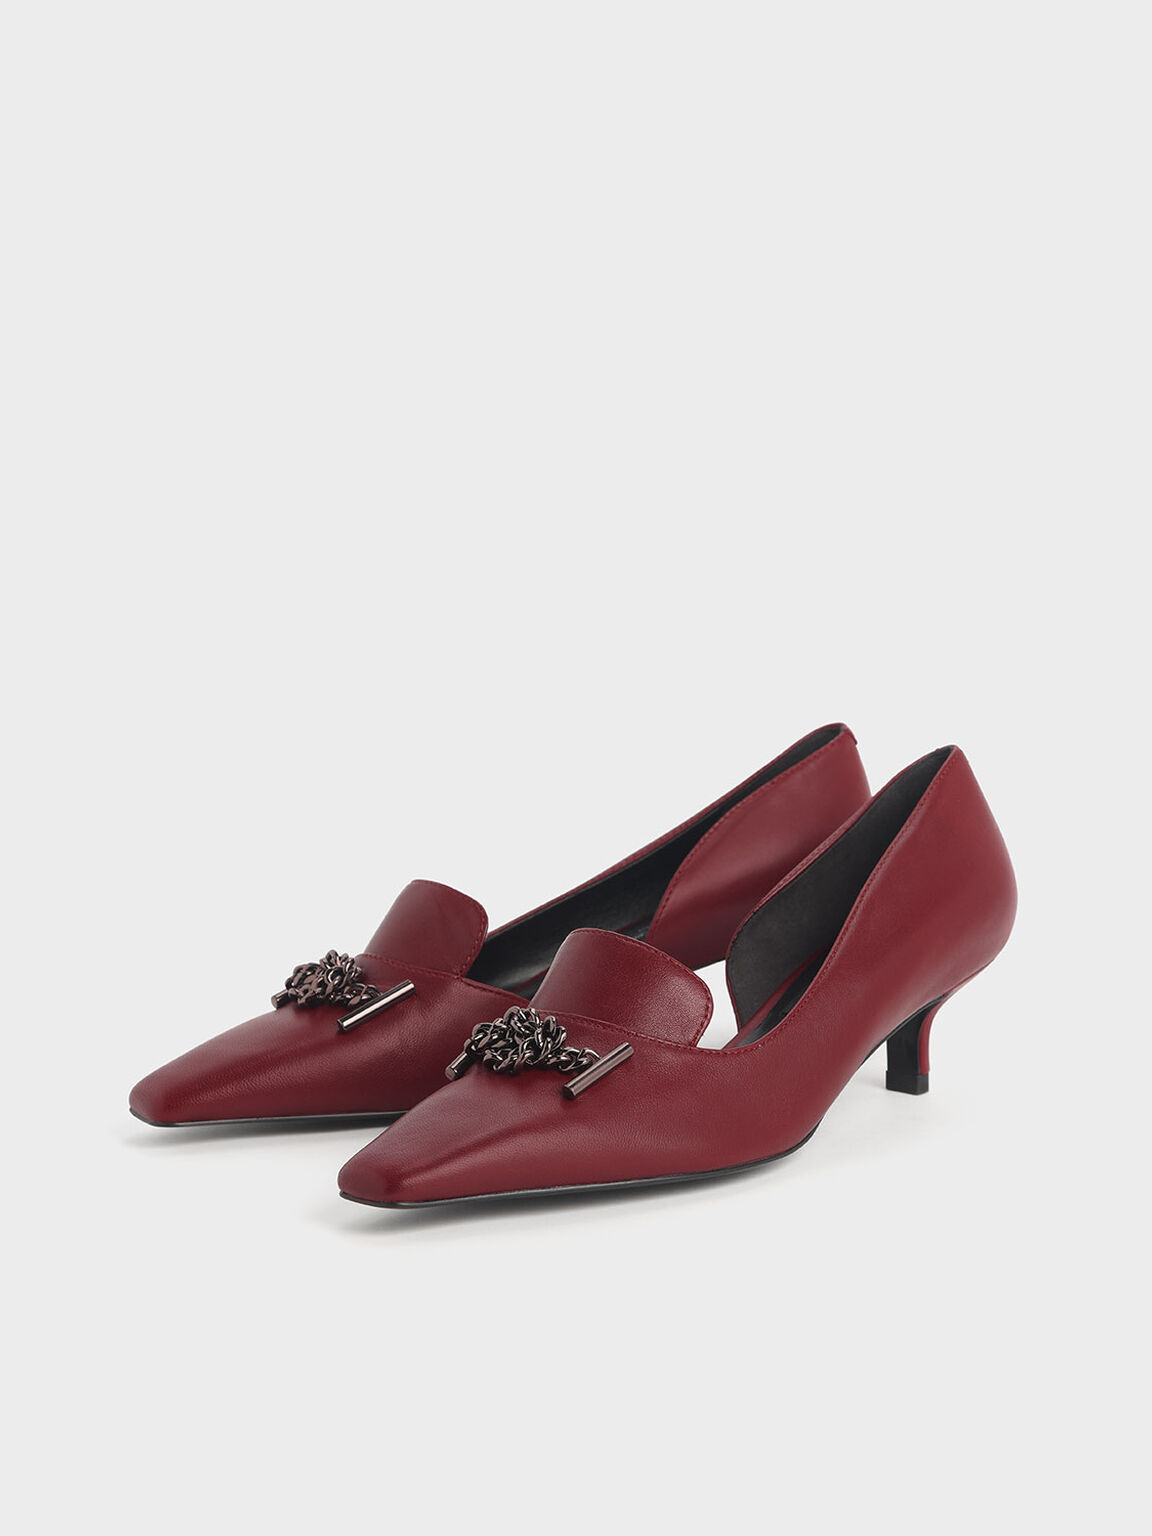 Knotted Chain Detail Leather Blade Heel D'Orsay Pumps, Red, hi-res